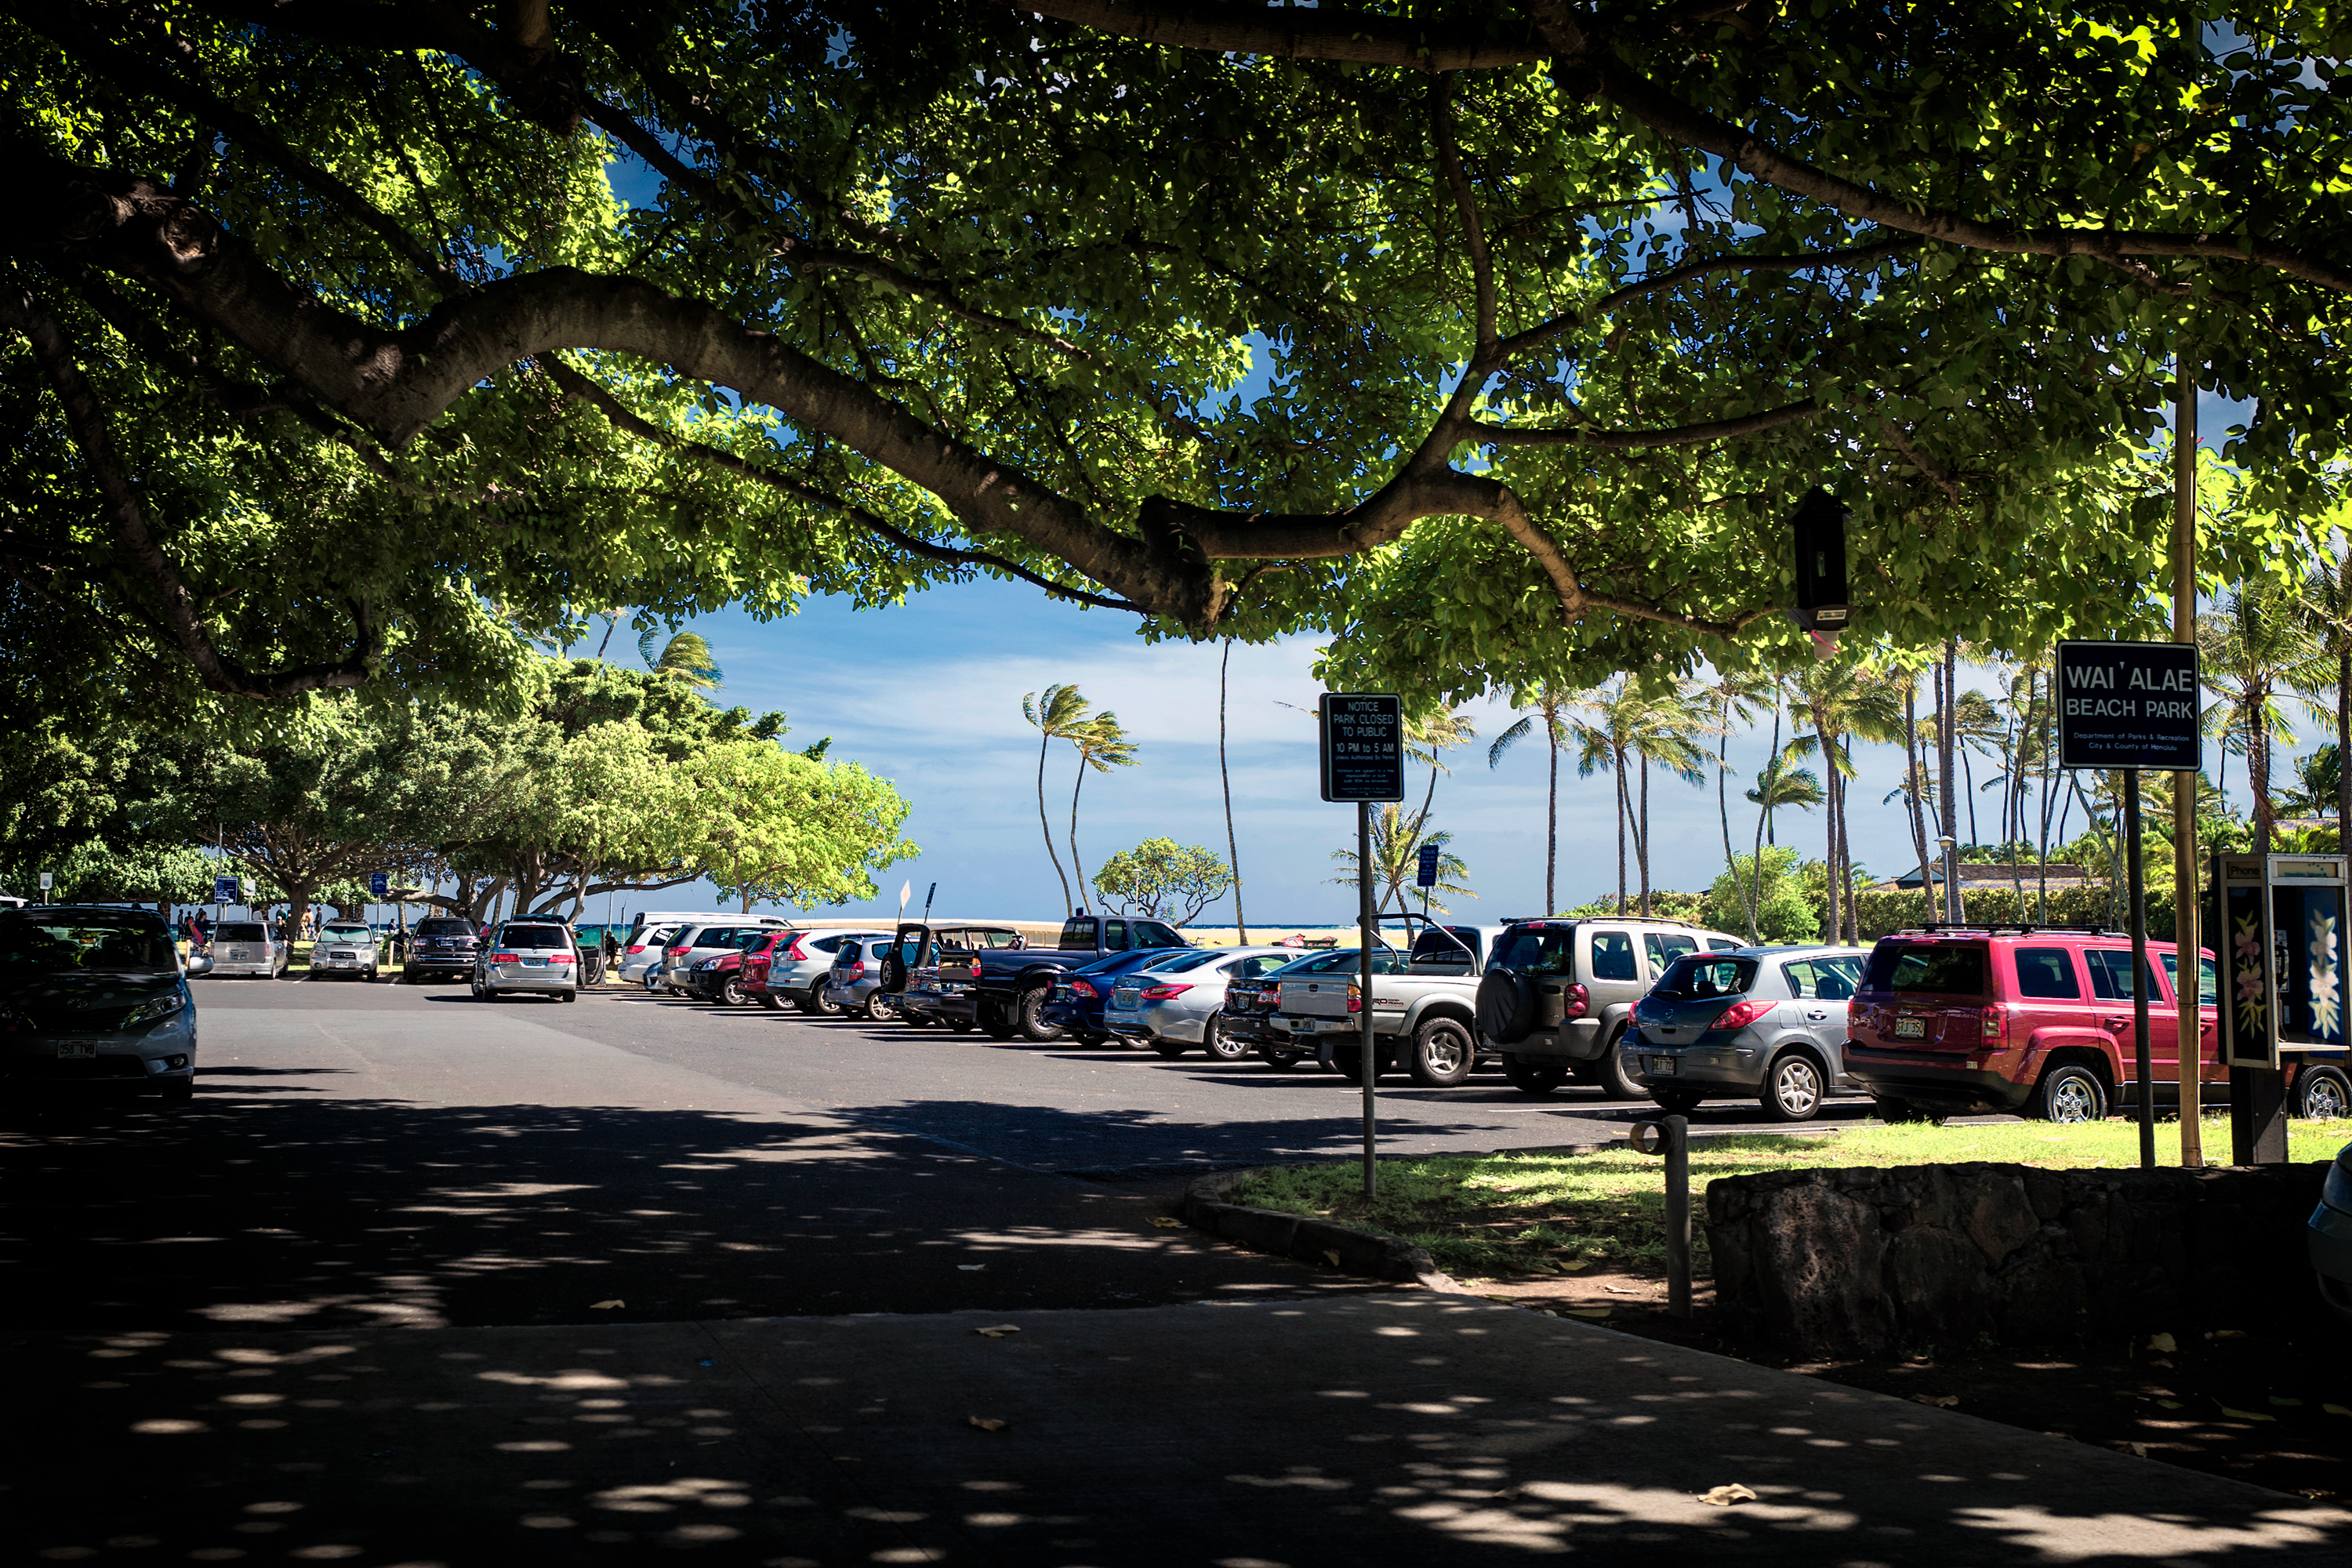 Waialae Beach Park Parking